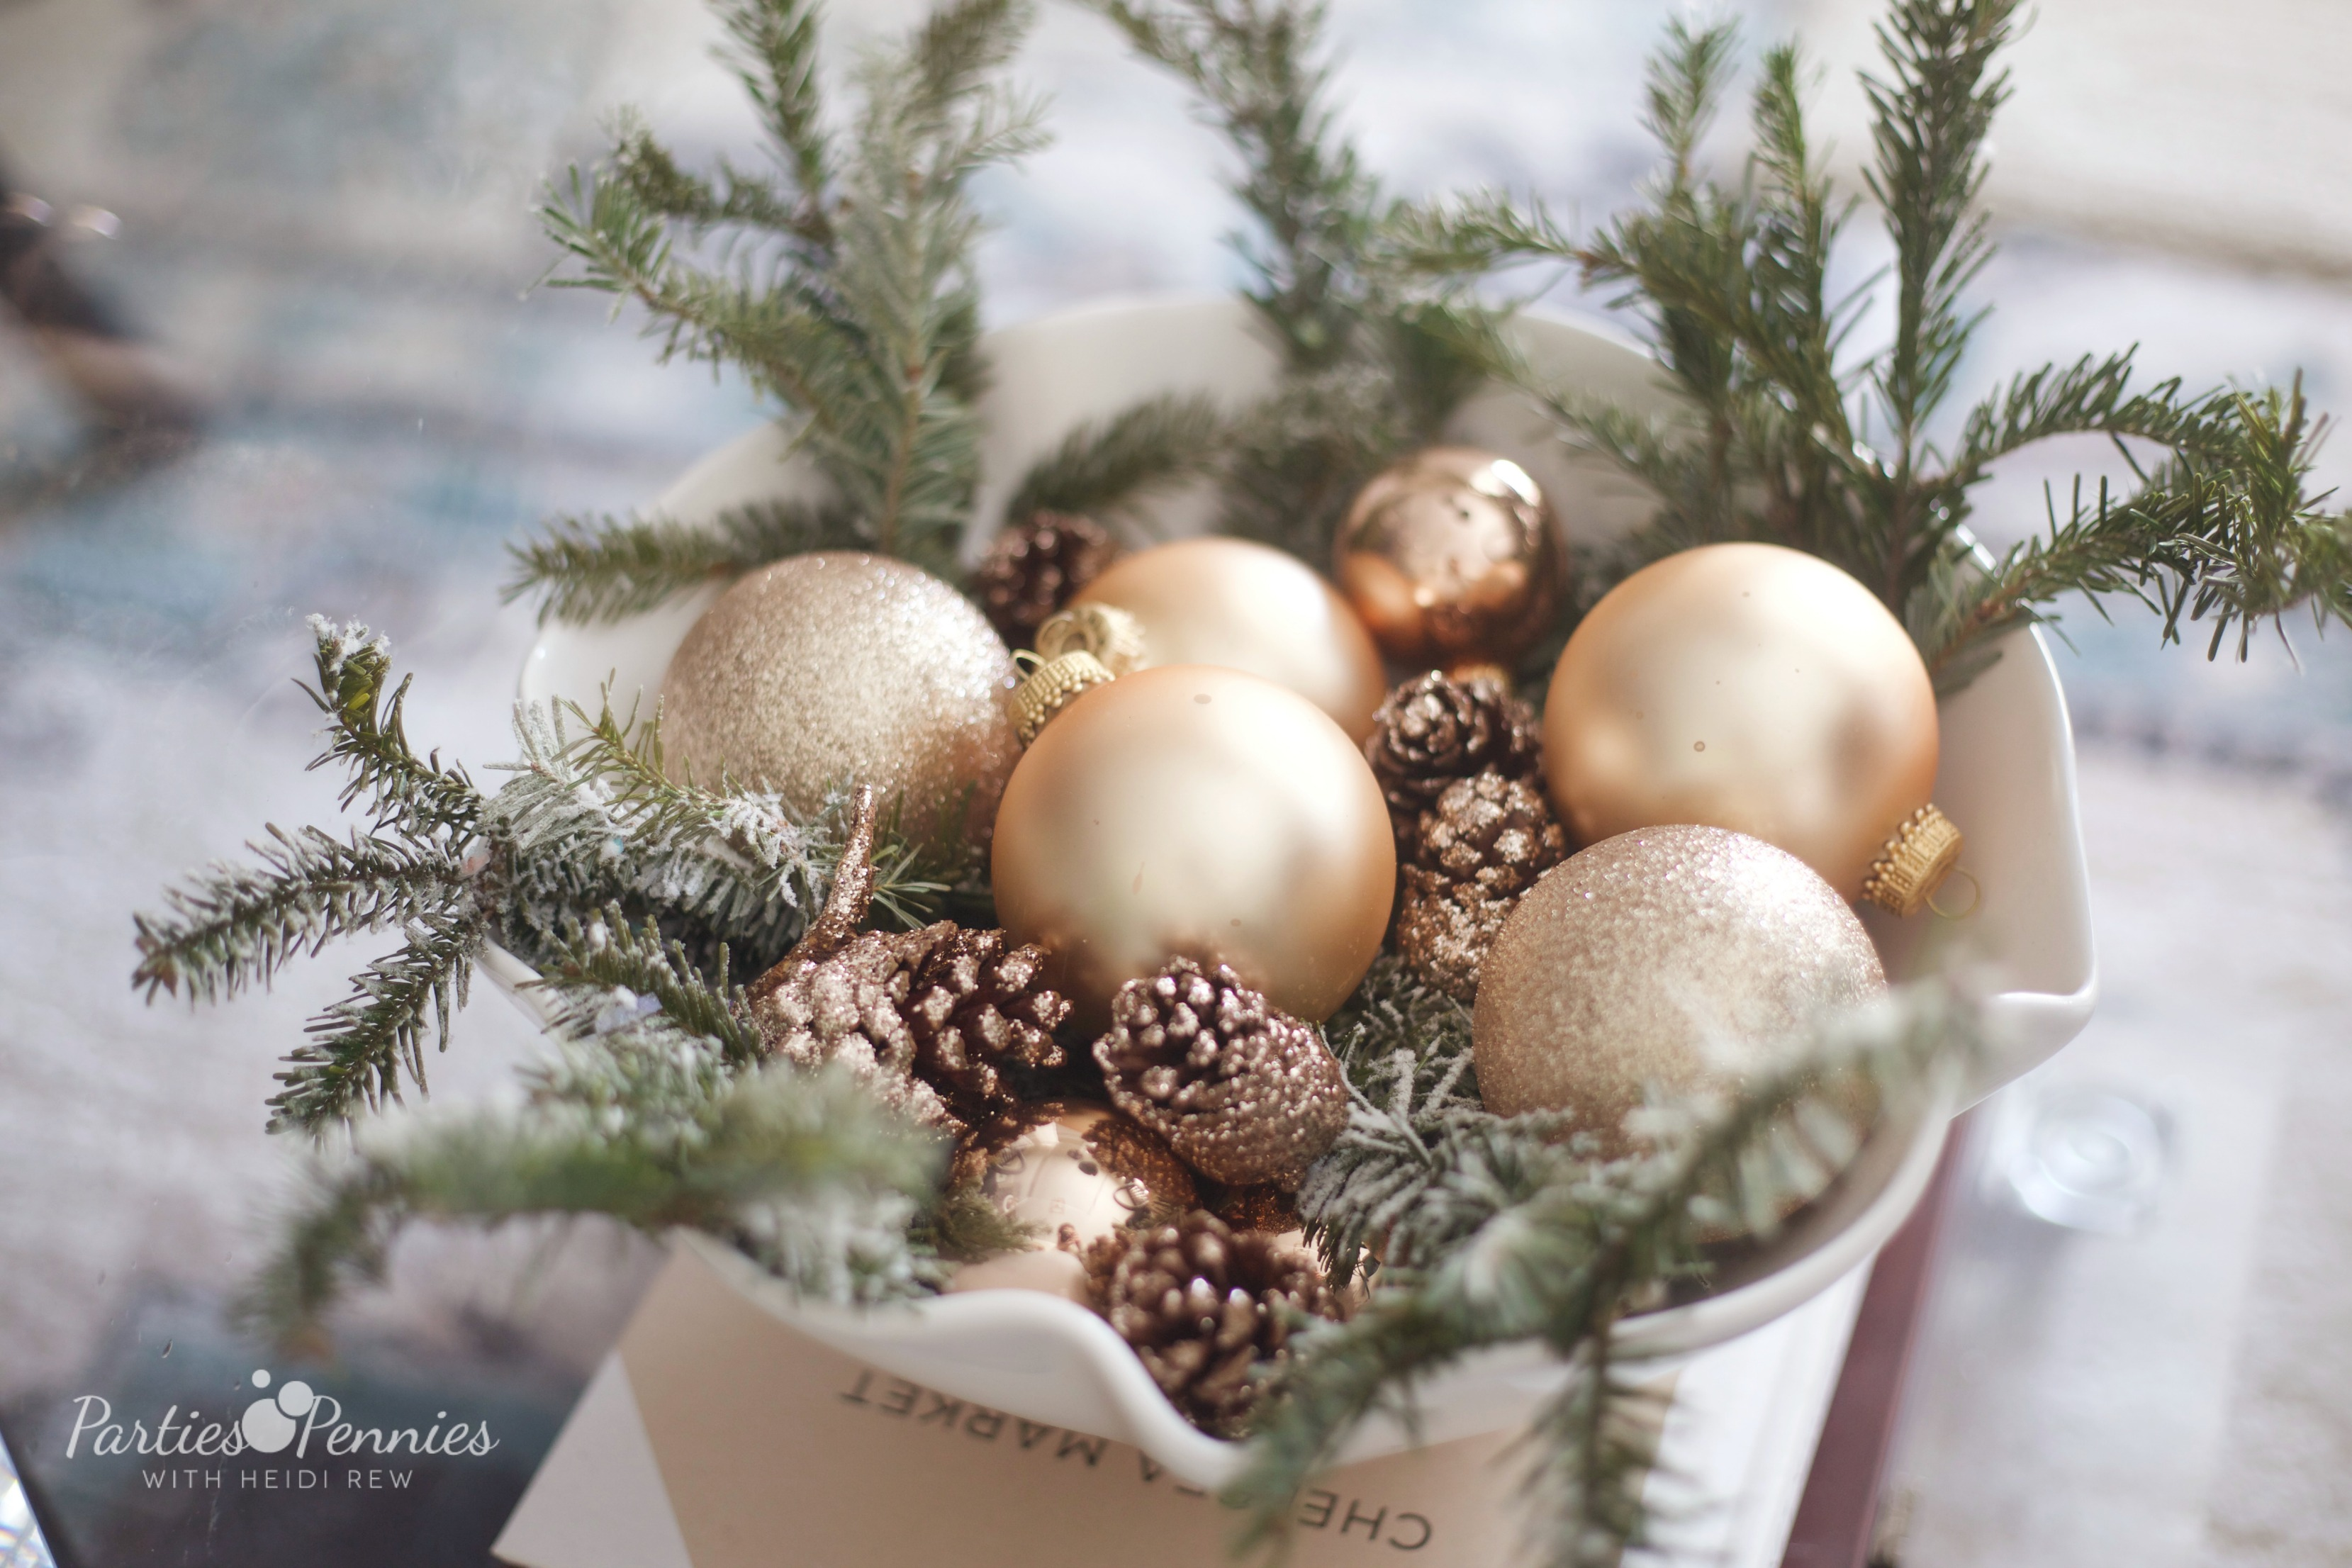 Rose Gold Christmas Decorations | Rose Gold Ornaments | Parties for Pennies